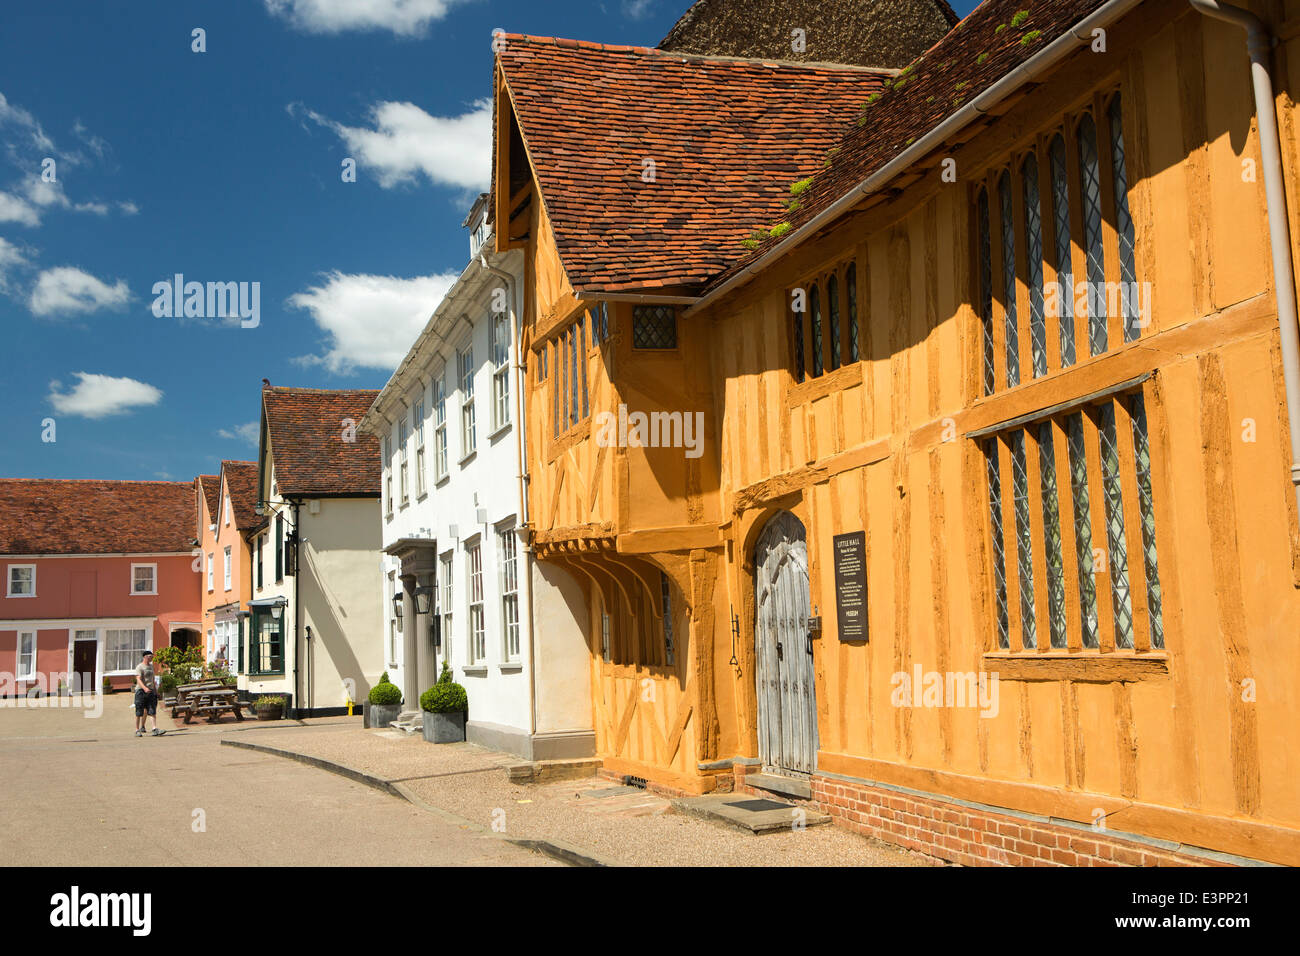 UK England, Suffolk, Lavenham, Market Square, Great House and C15th Little Hall - Stock Image